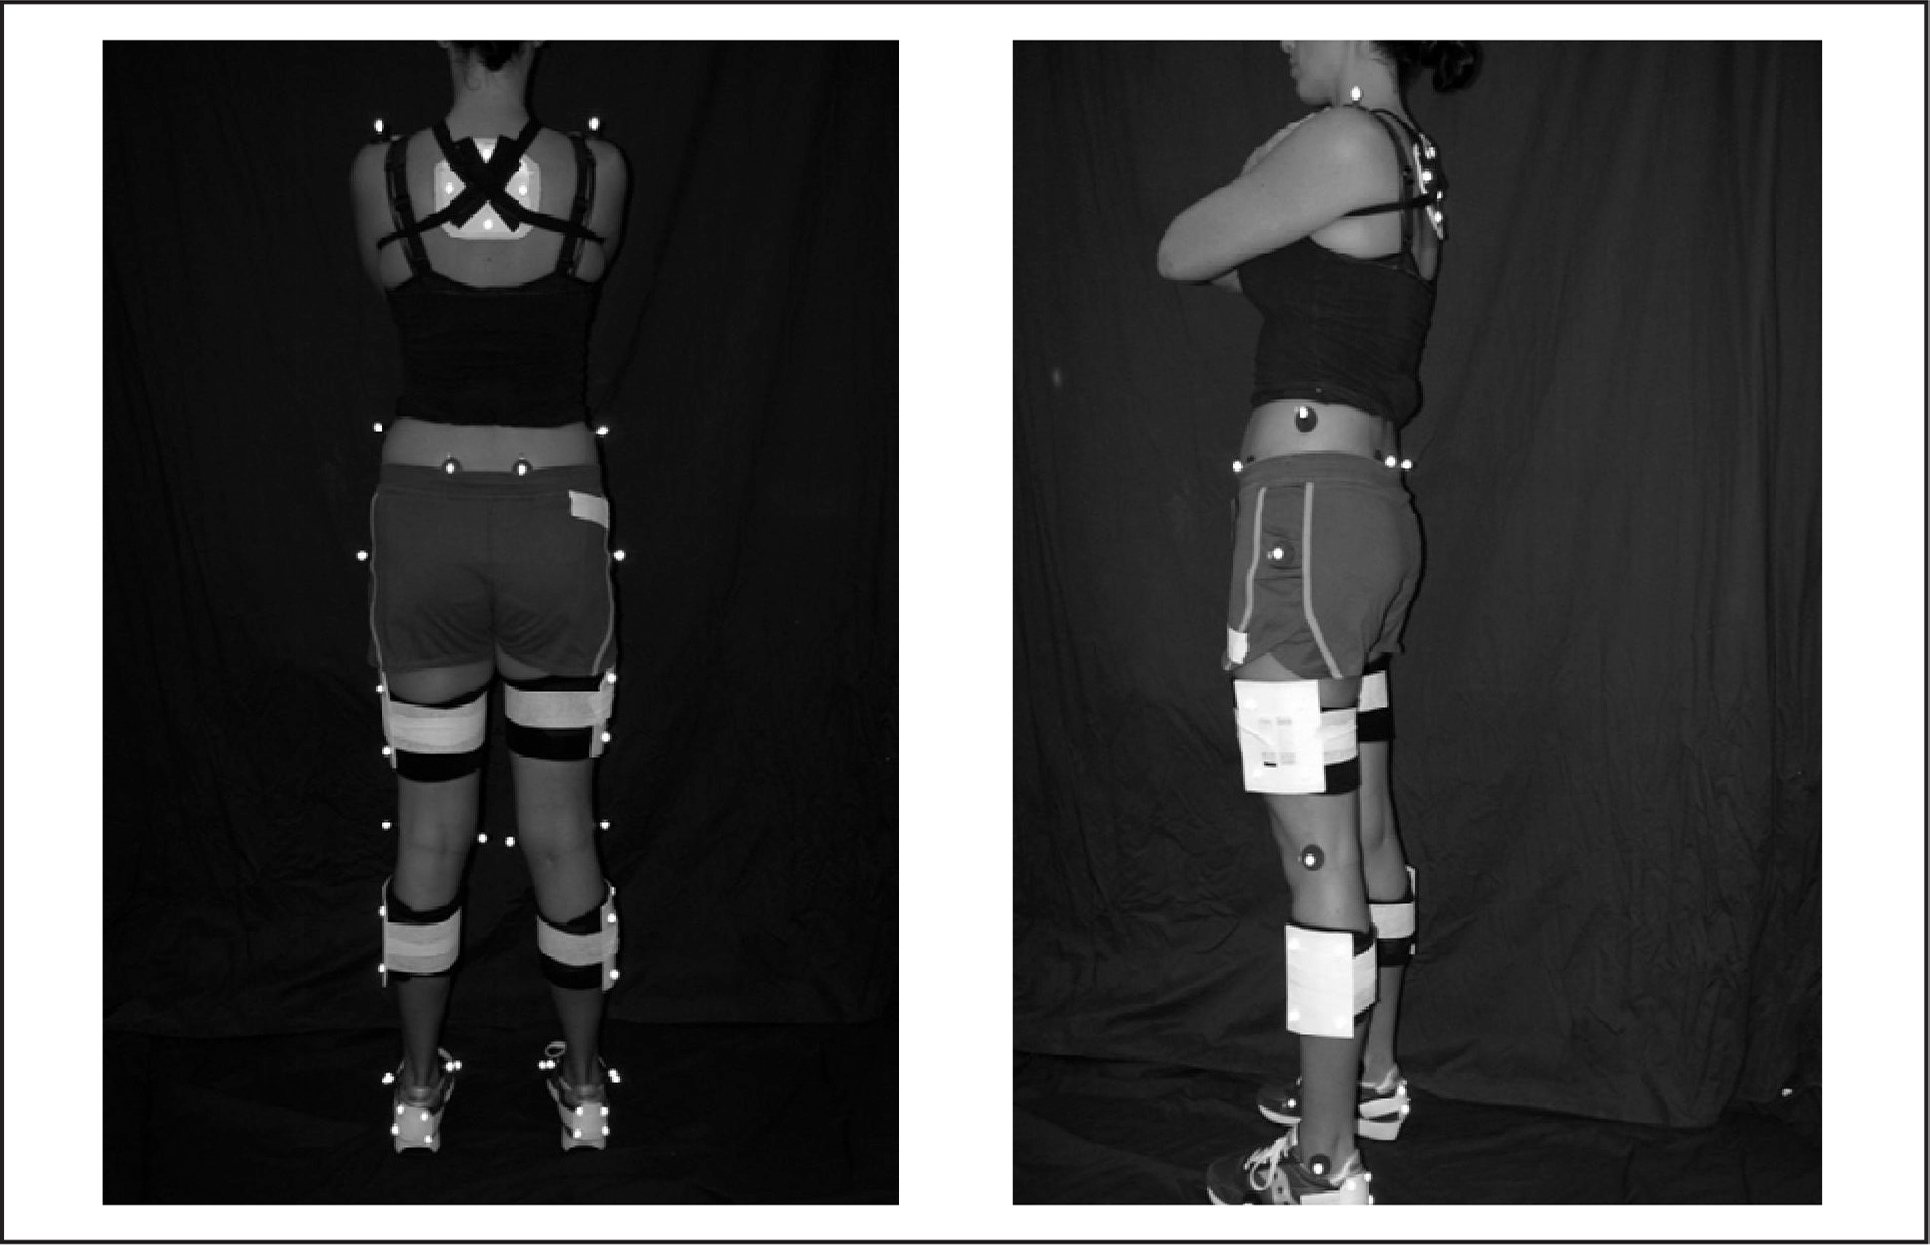 Placement of reflective markers for three-dimensional joint motion analysis.